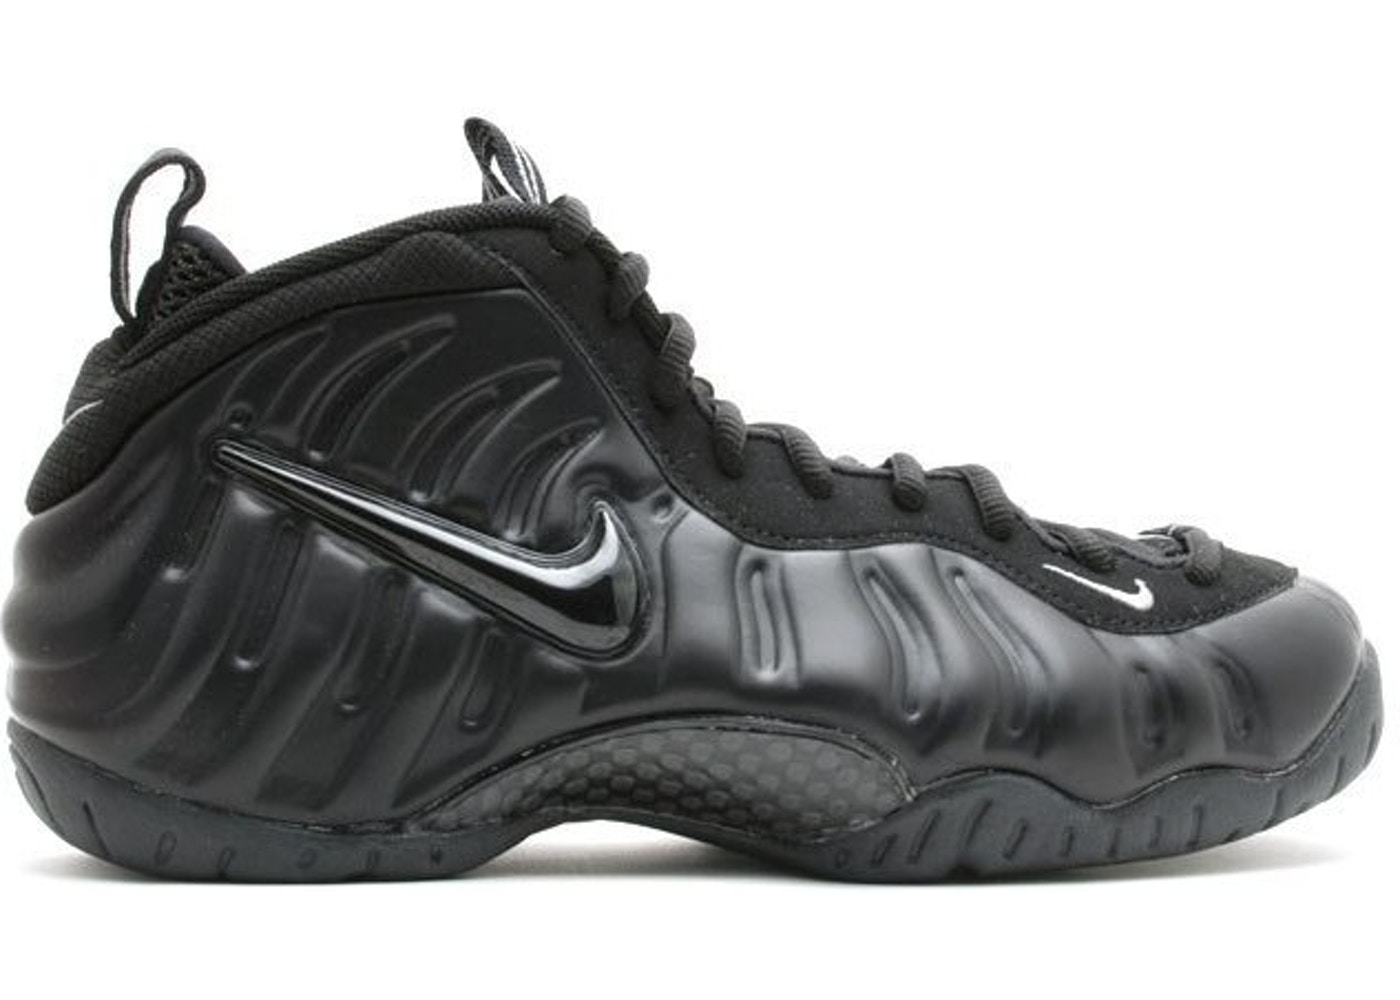 5b028c375b9 Air Foamposite Pro All Black - multiple